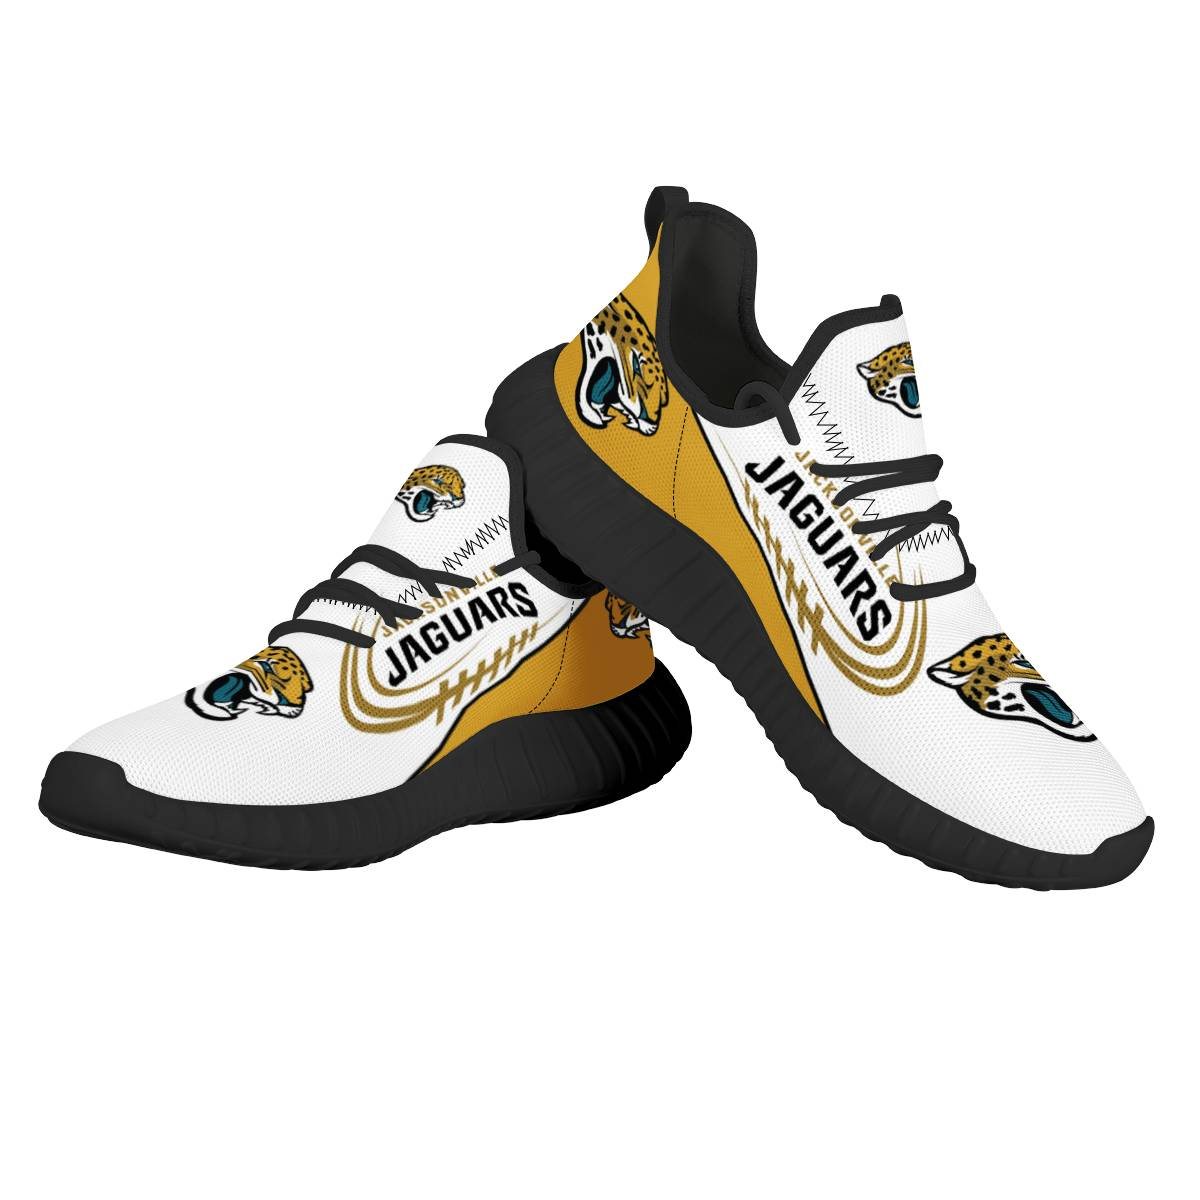 Men's NFL Jacksonville Jaguars Mesh Knit Sneakers/Shoes 001